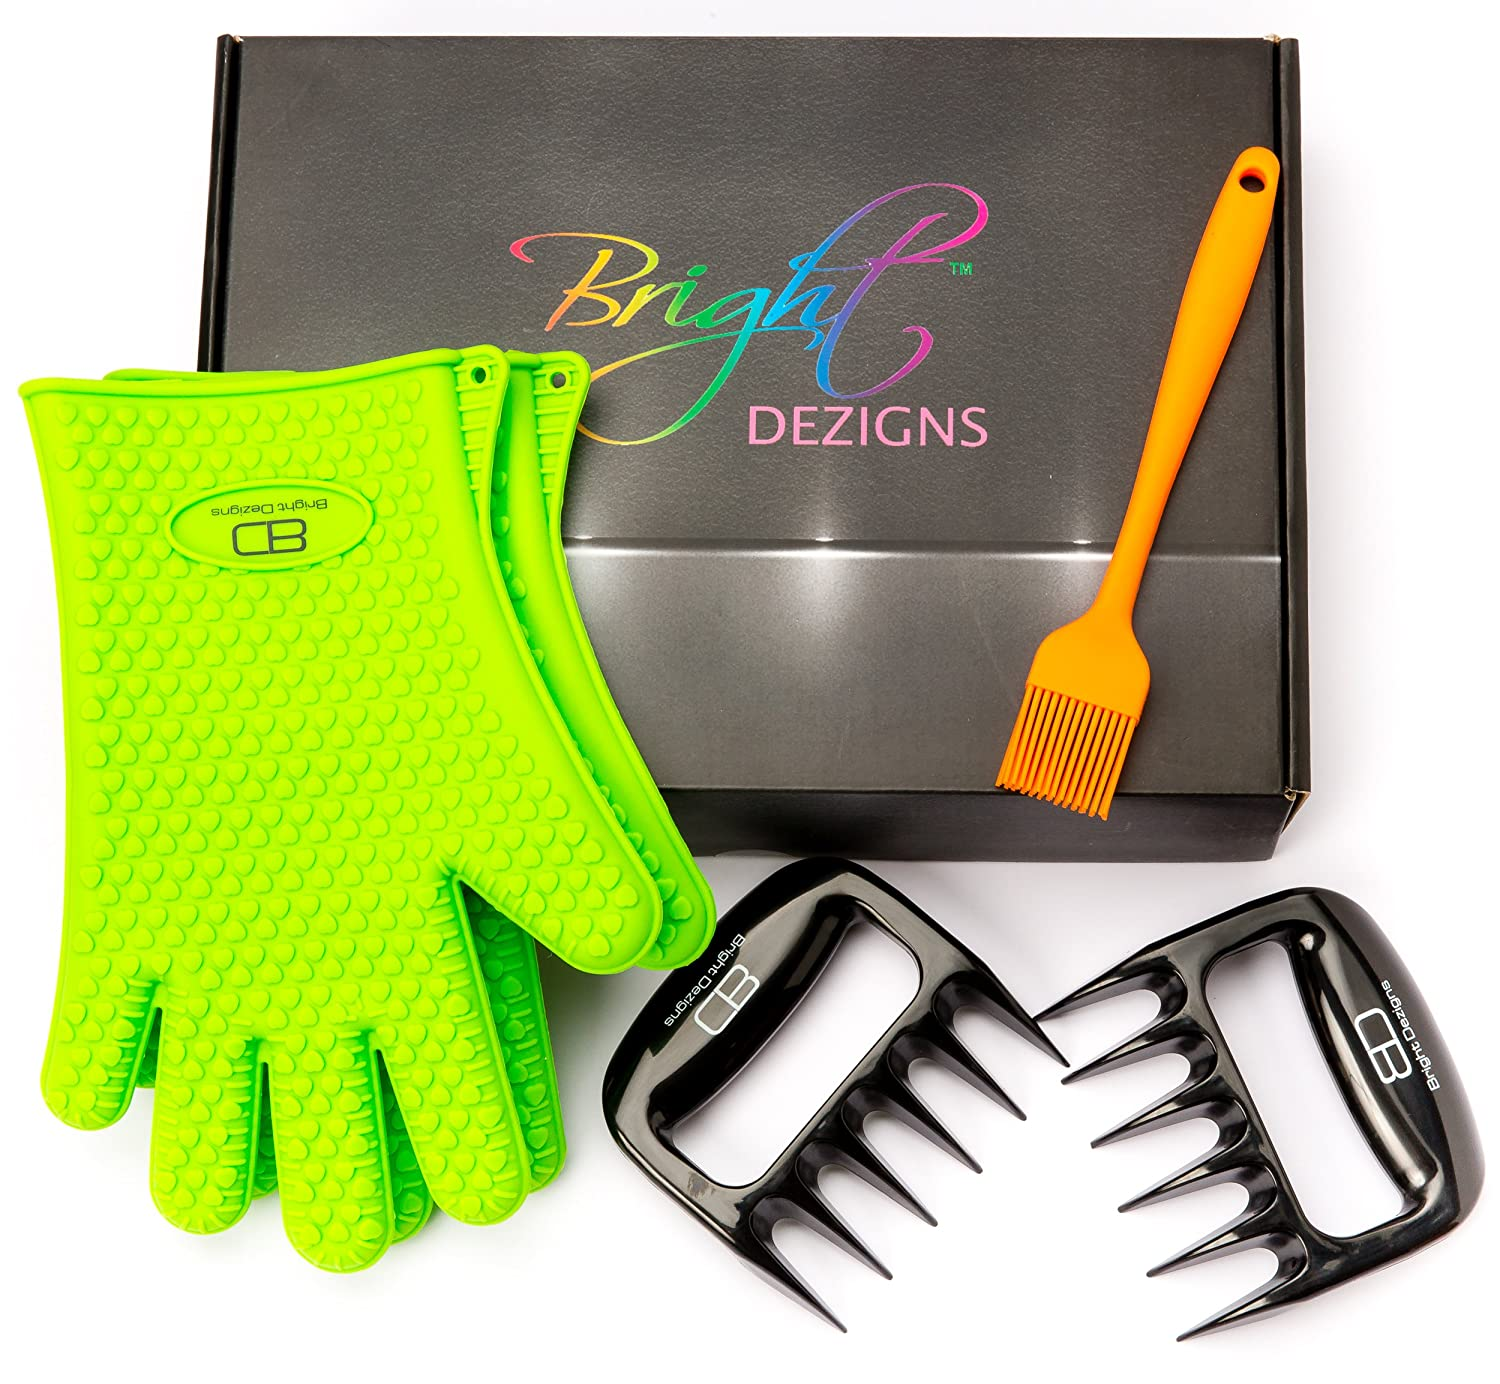 Bright Dezigns Silicone Heat Proof Bbq Grill Gloves | Cooking Grilling Barbecues| PLUS Set of 2 Meat Handling Bear Claws| Meat,Chicken shredders & Silicone Basting Brush | Nice Gift Set Idea.